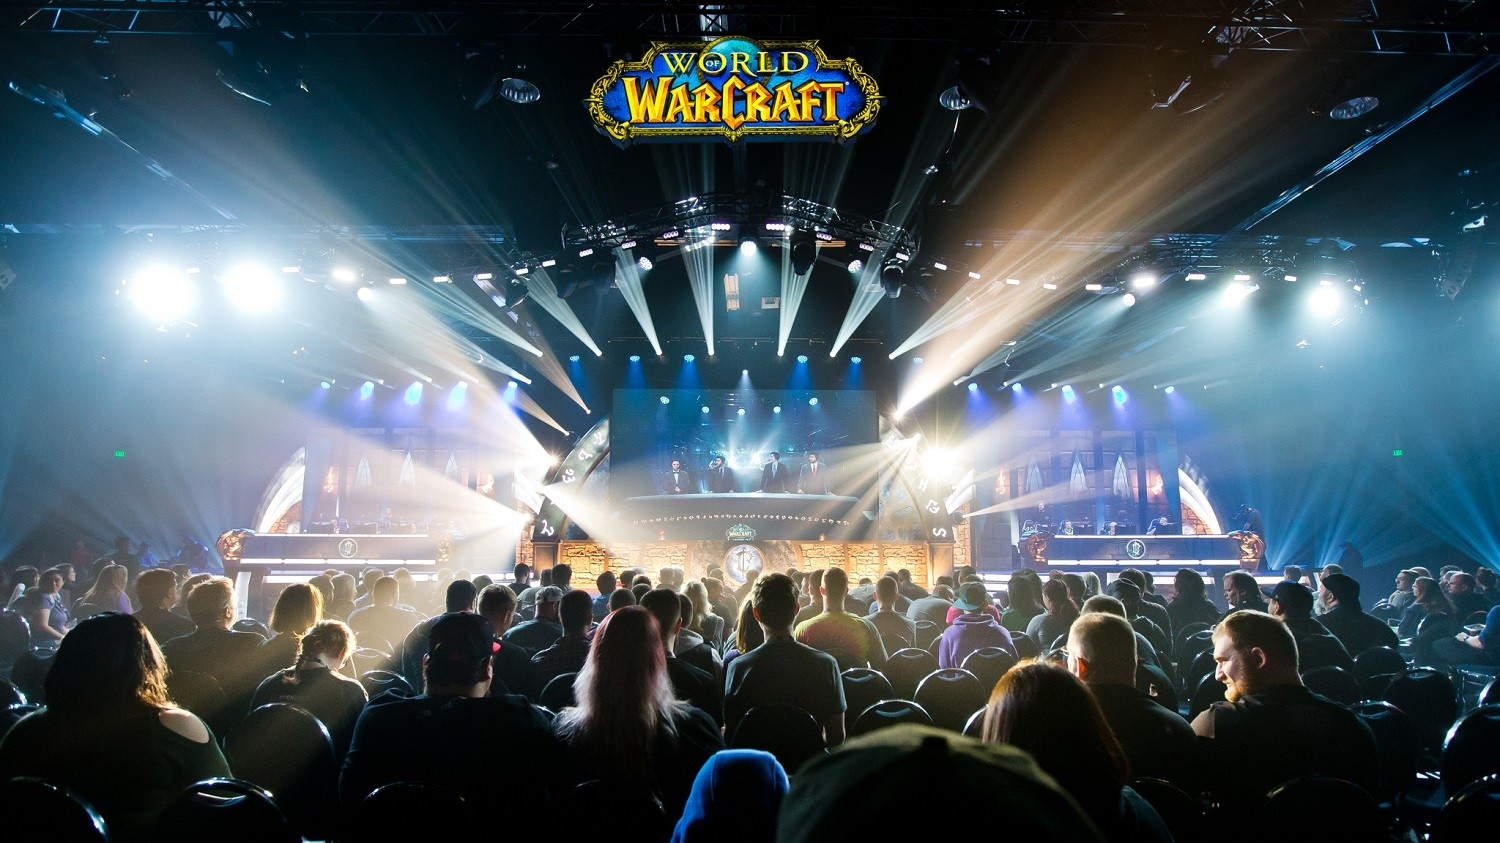 World of Warcraft: Pro arena players weigh-in on upcoming PvP